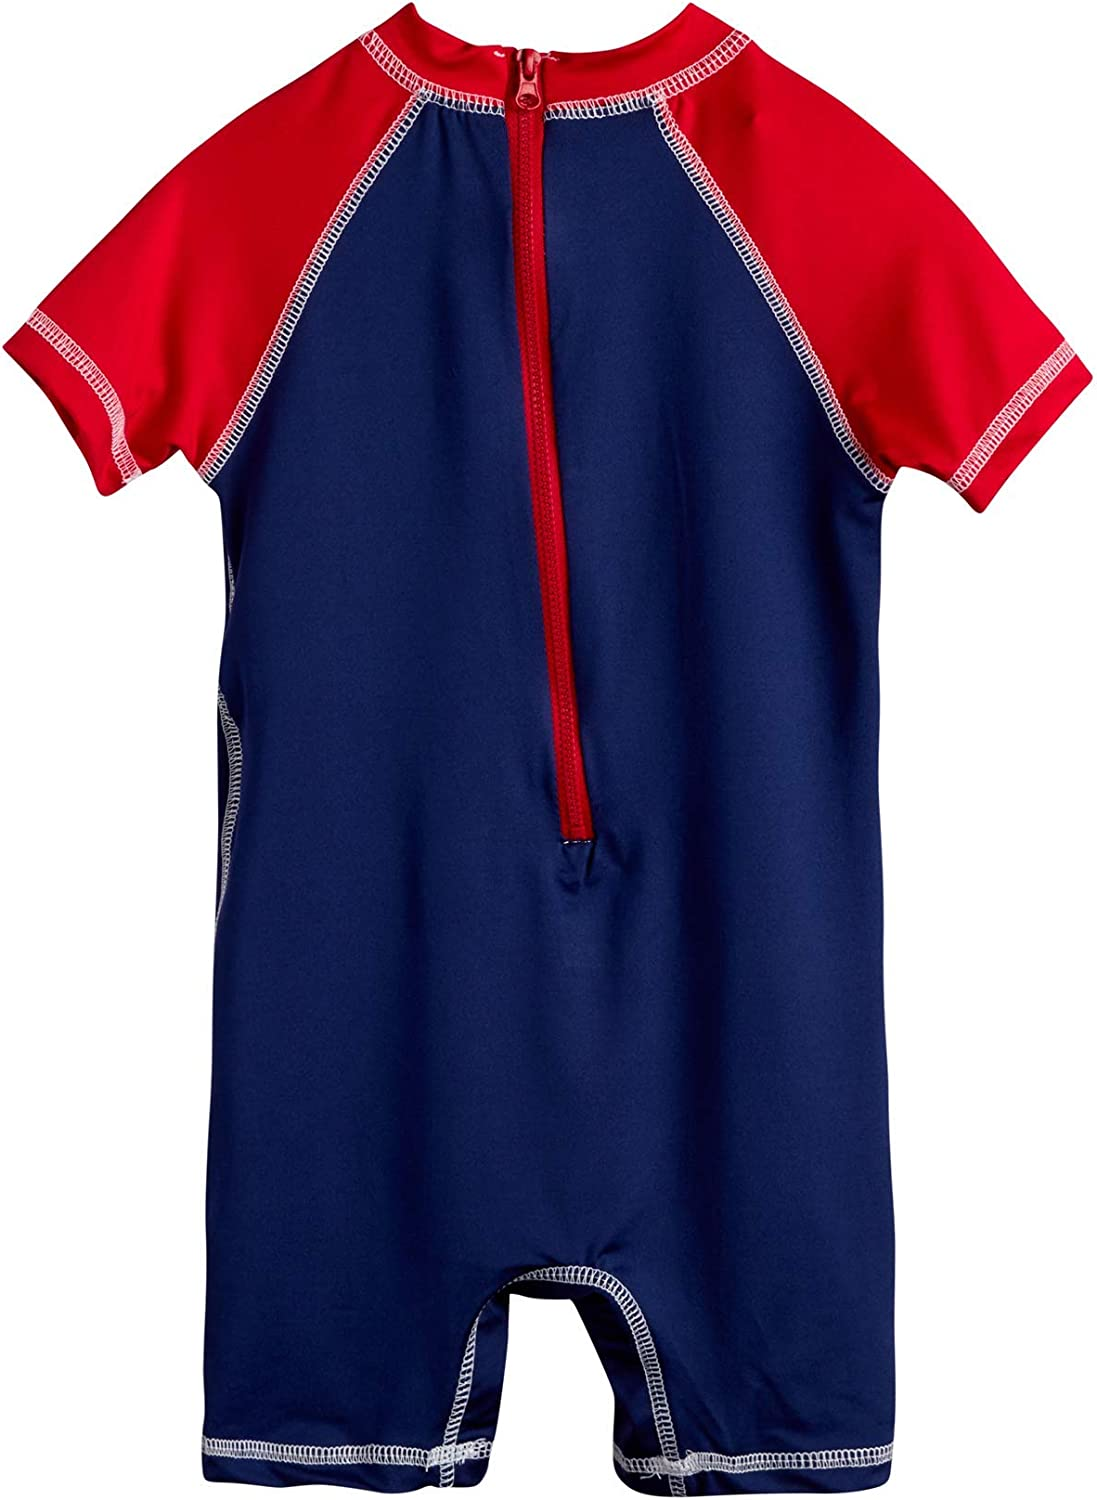 Red//Navy//Crab Size 18 Months Newborn and Infant Sun Protection Swimsuit Wippette Baby Boys One-Piece UPF 50+ Rash Guard Sunsuits